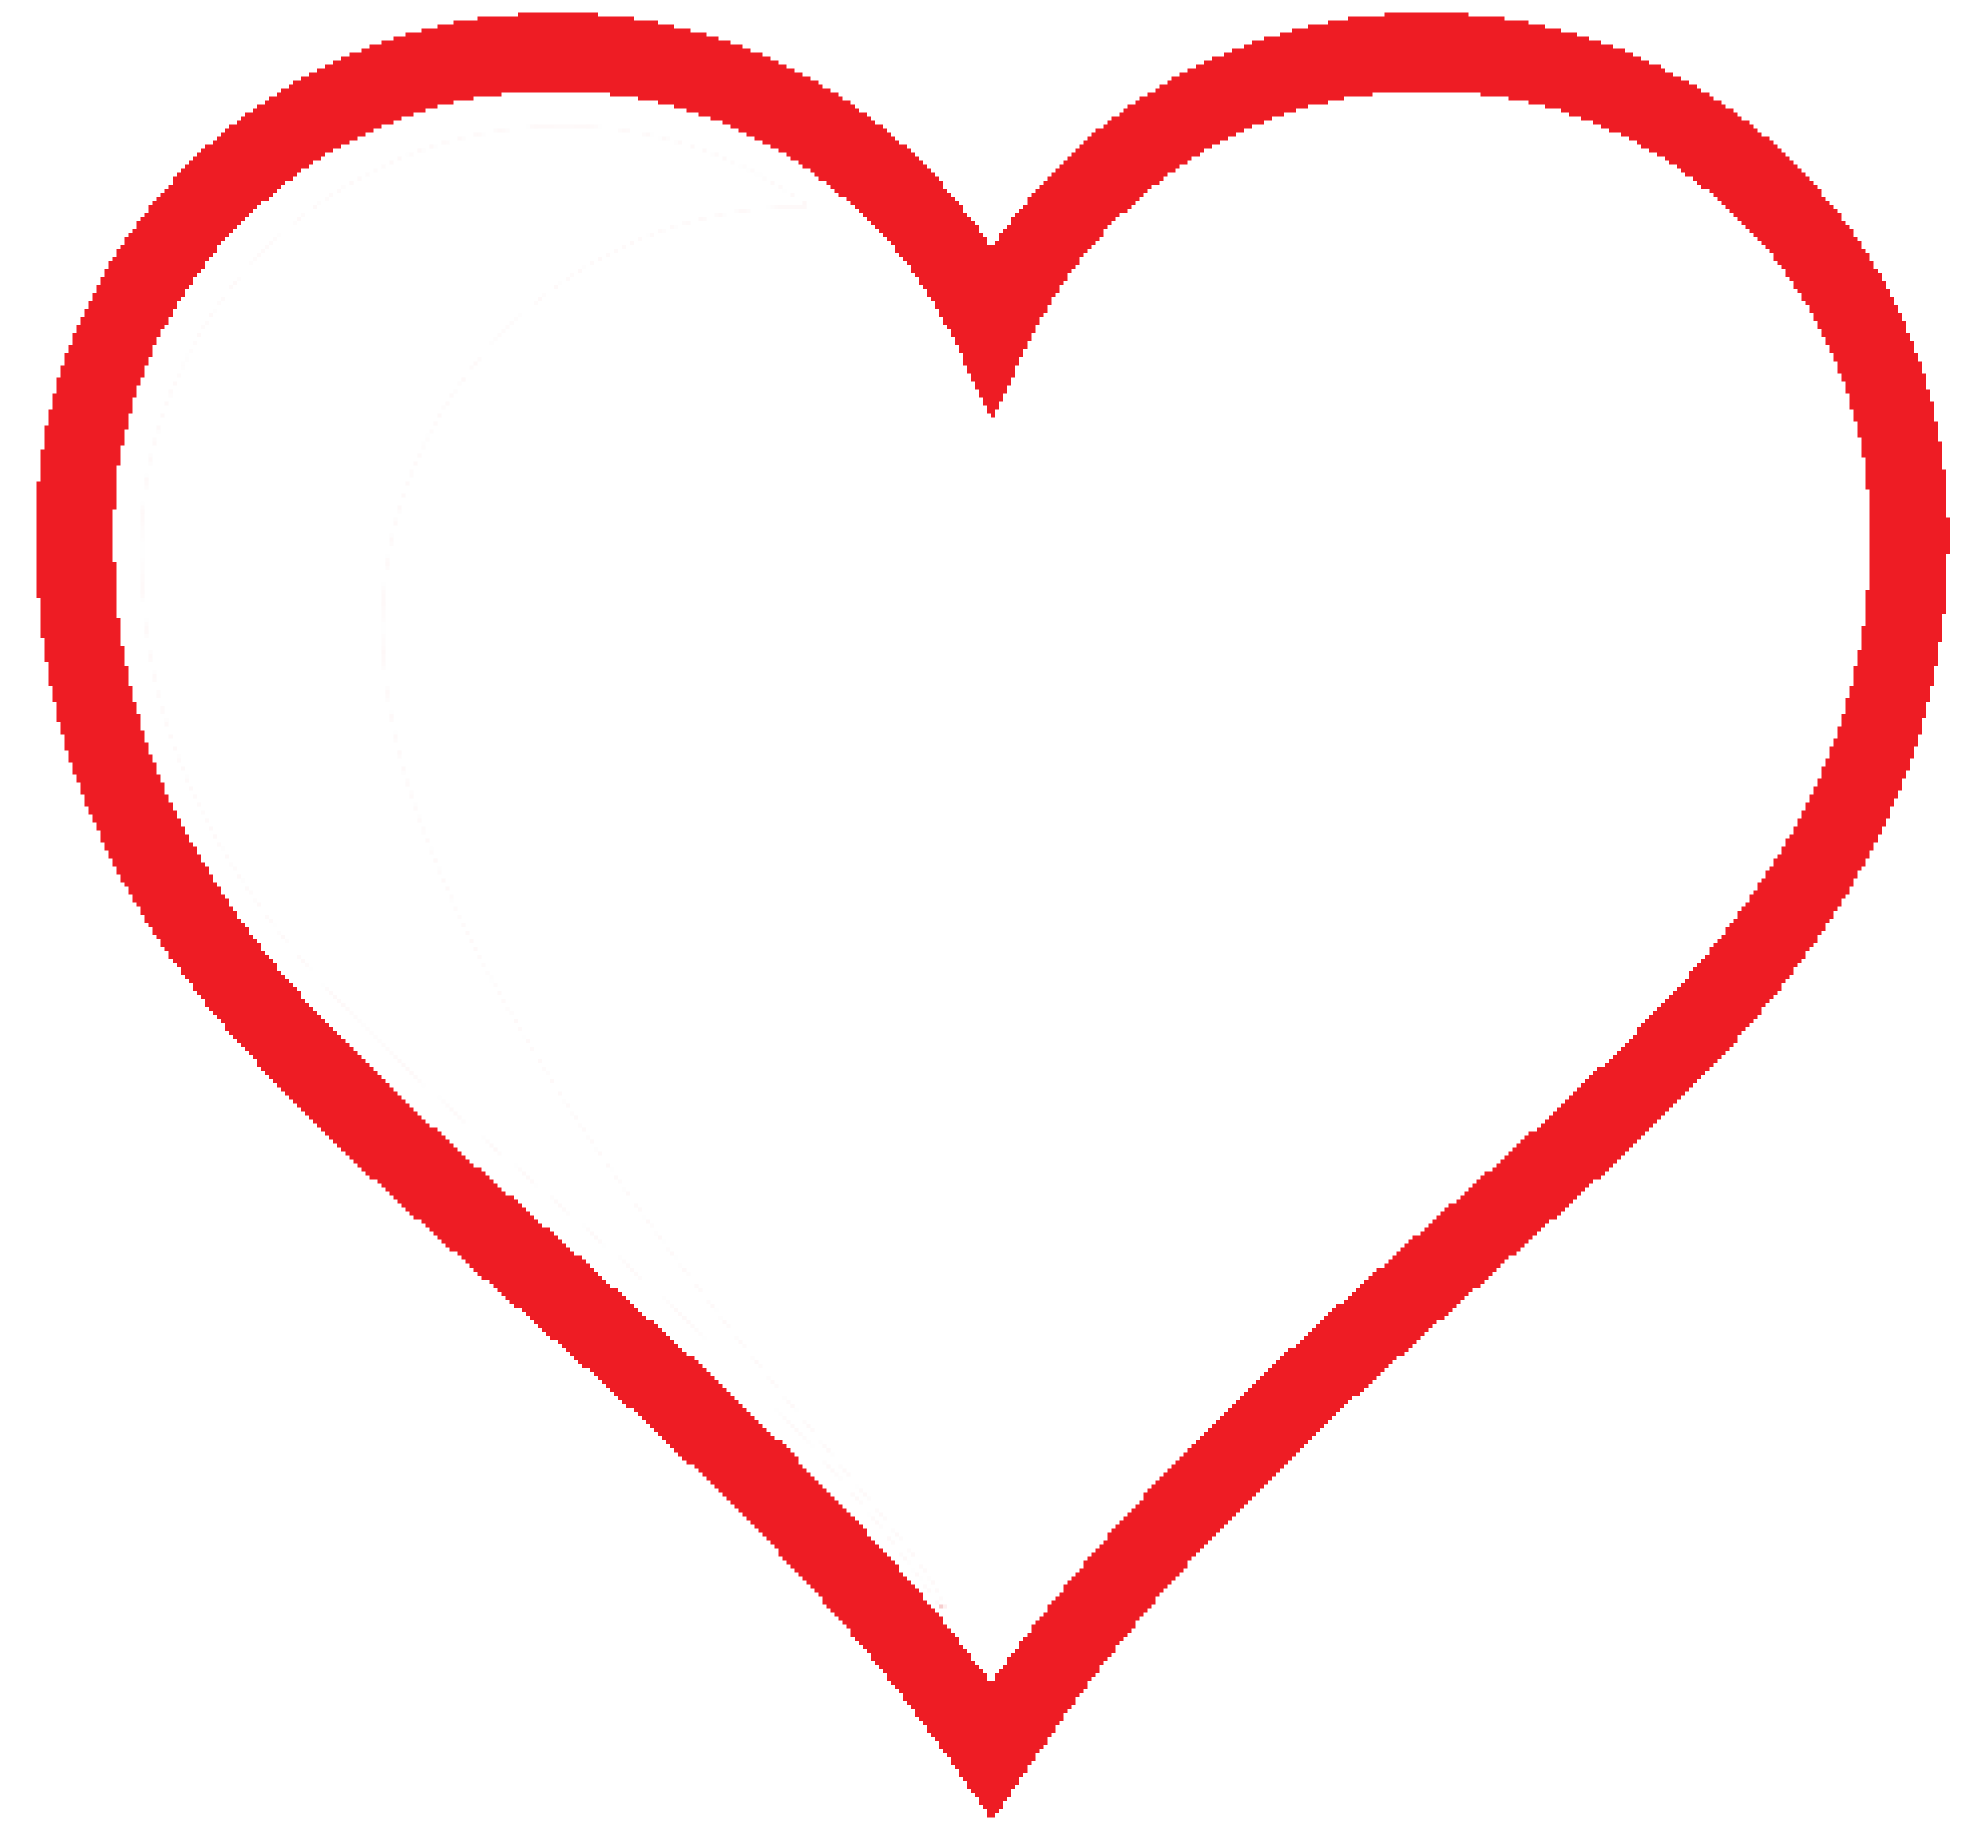 Simple Heart Clipart at GetDrawings.com.